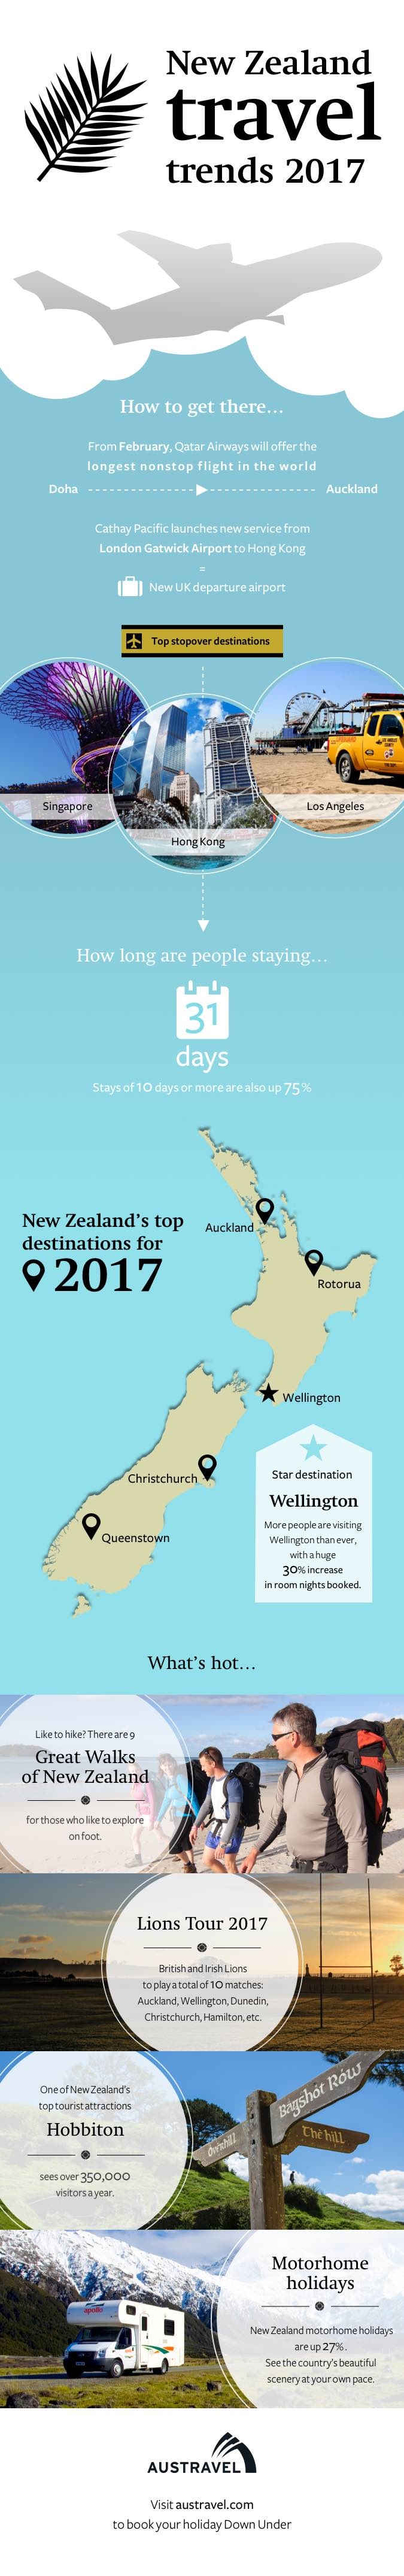 New Zealand travel trends infographic